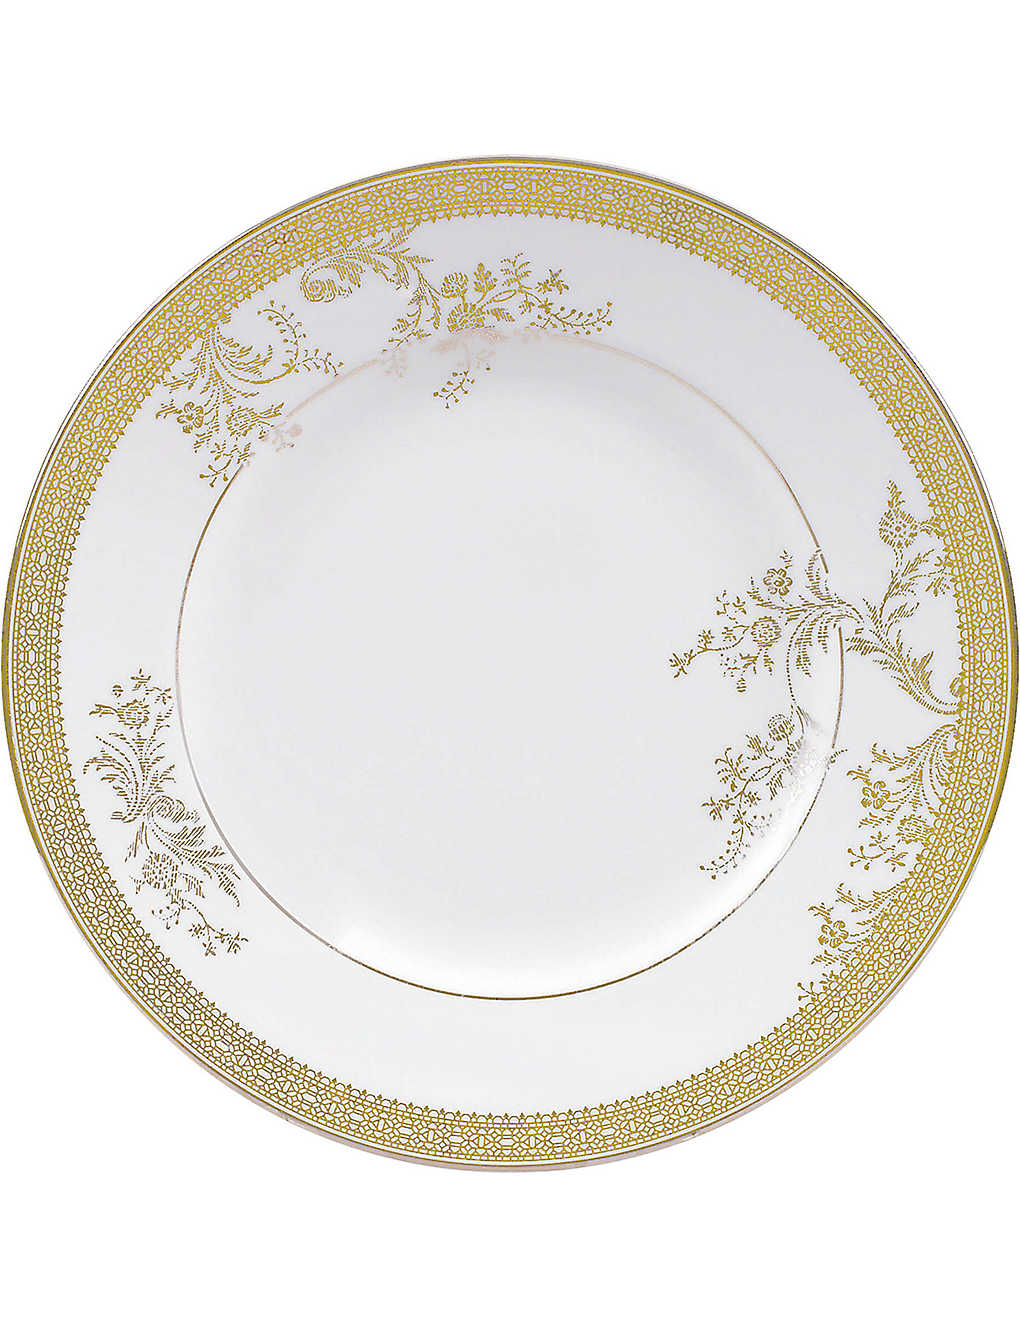 VERA WANG @ WEDGWOOD: Lace Gold plate 20cm